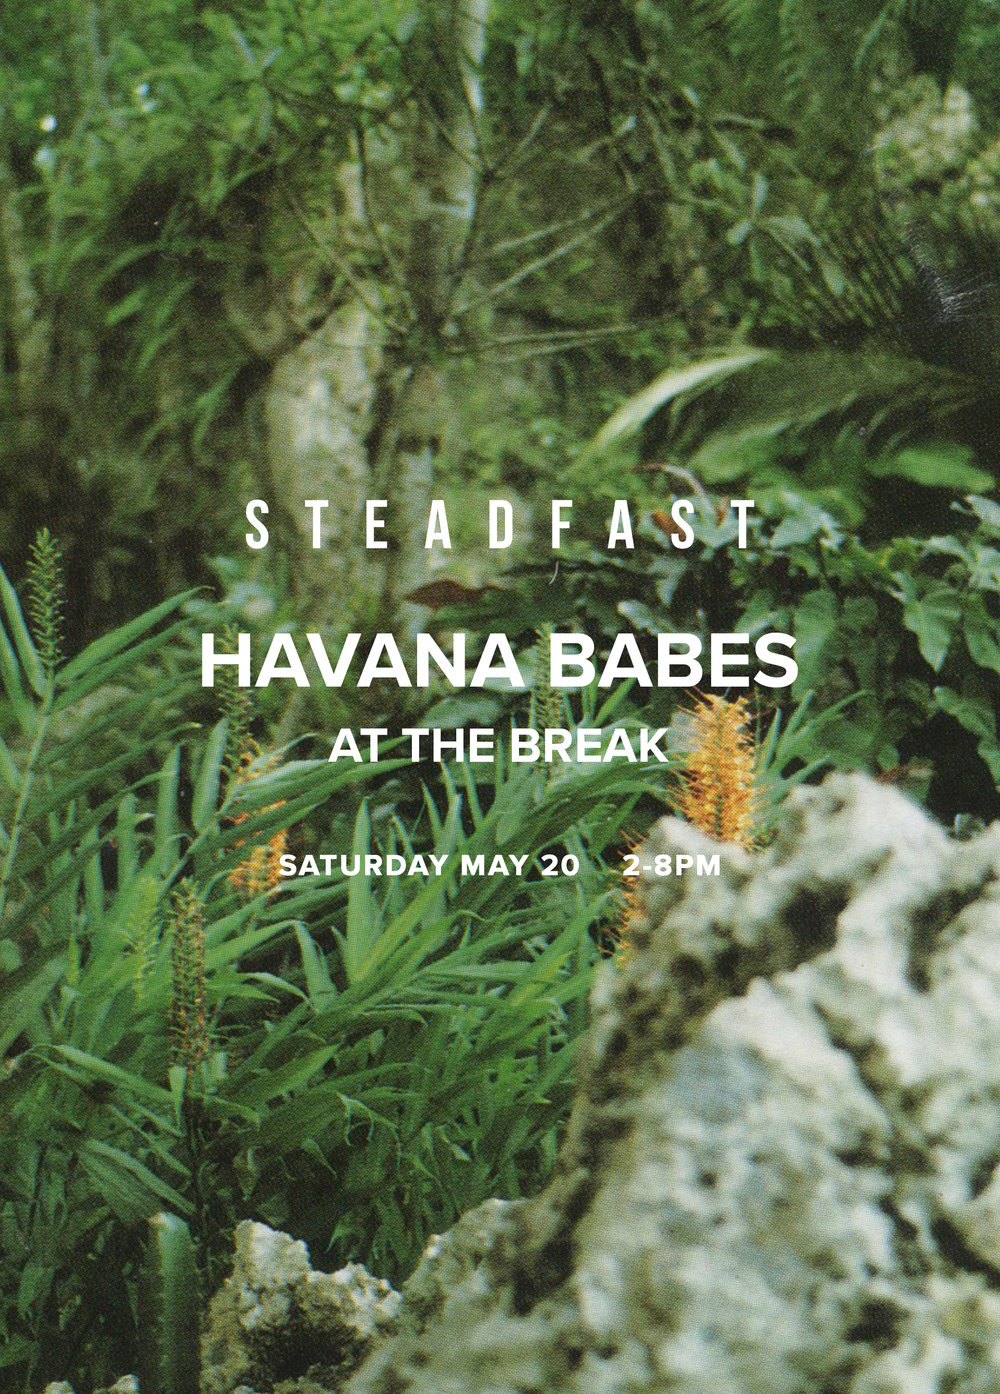 - Join us for a raucous day celebrating Cuban culture with Steadfast Magazine in honor of their third issue. Bottomless drinks, the best cuban music, a curated selection of inspired vintage, and a window installation by Andrea Smith.